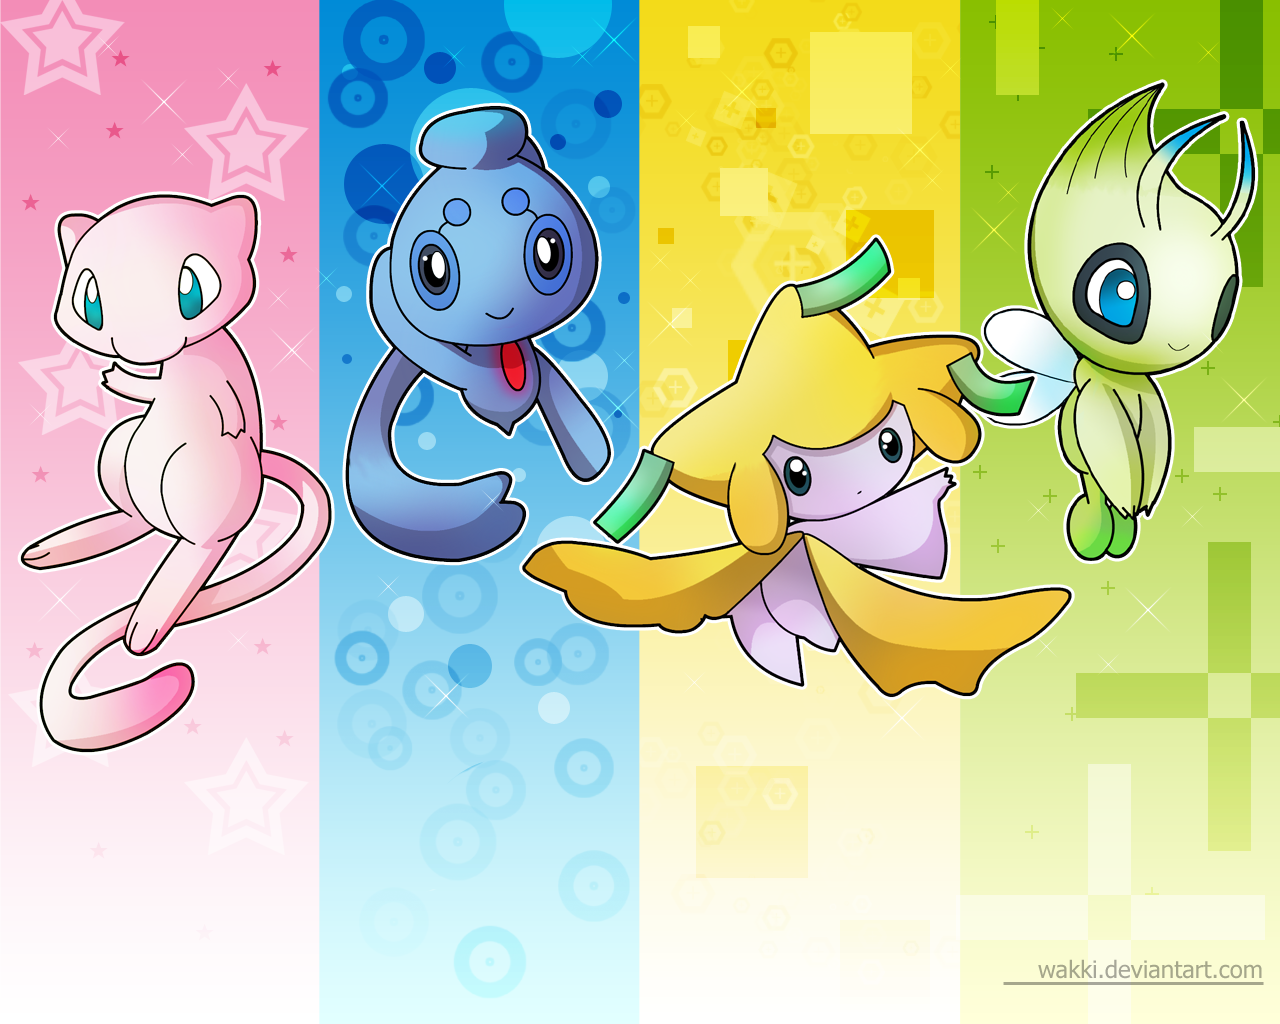 Nice colorful pokemon desktop wallpaper from pokemon Silver/Gold. From left to right: Mew, Phione, Jirachi, Celebe